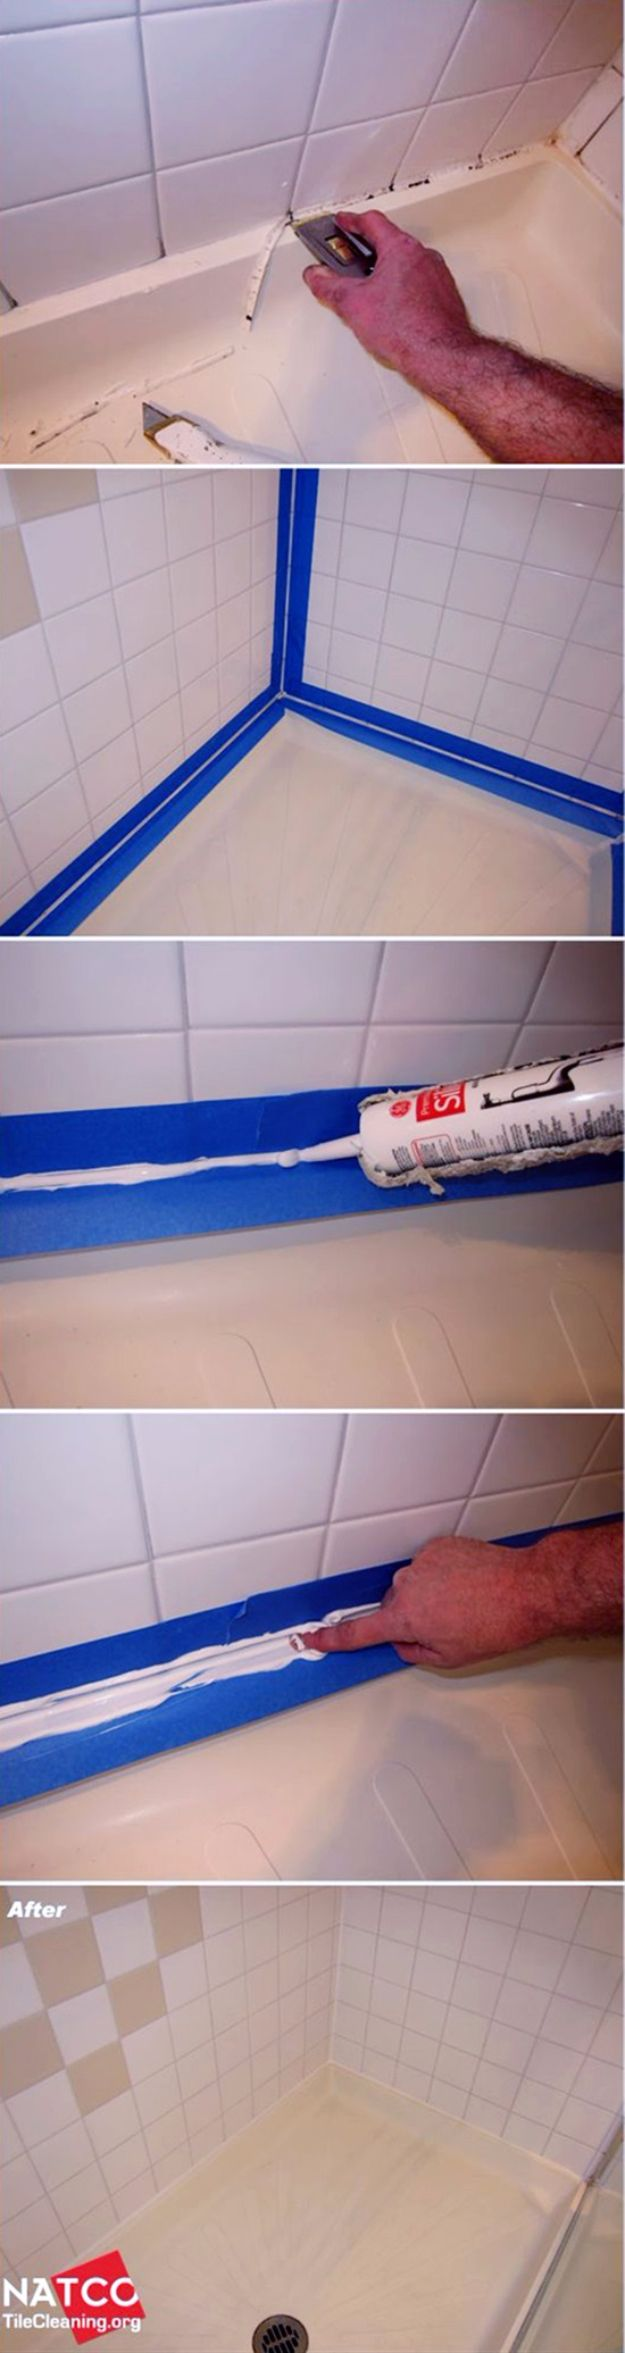 Easy Home Repair Hacks - Caulk Like A Pro - Quick Ways to Easily Fix Broken Things Around The House - DIY Tricks for Home Improvement and Repairs - Simple Solutions for Kitchen, Bath, Garage and Yard - Caulk, Grout, Wall Repair and Wood Patching and Staining http://diyjoy.com/easy-home-repair-hacks